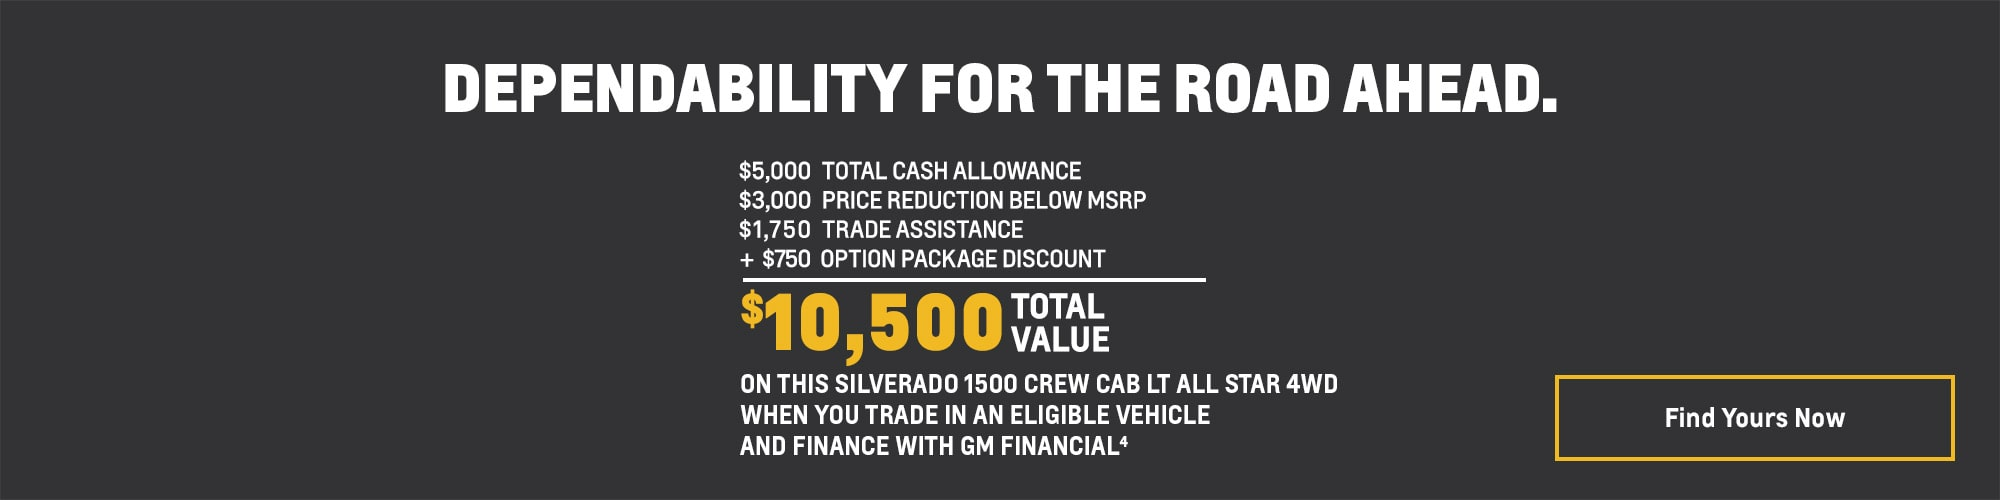 Silverado 1500 Crew Cab LT All Star - $10,500 Total Value